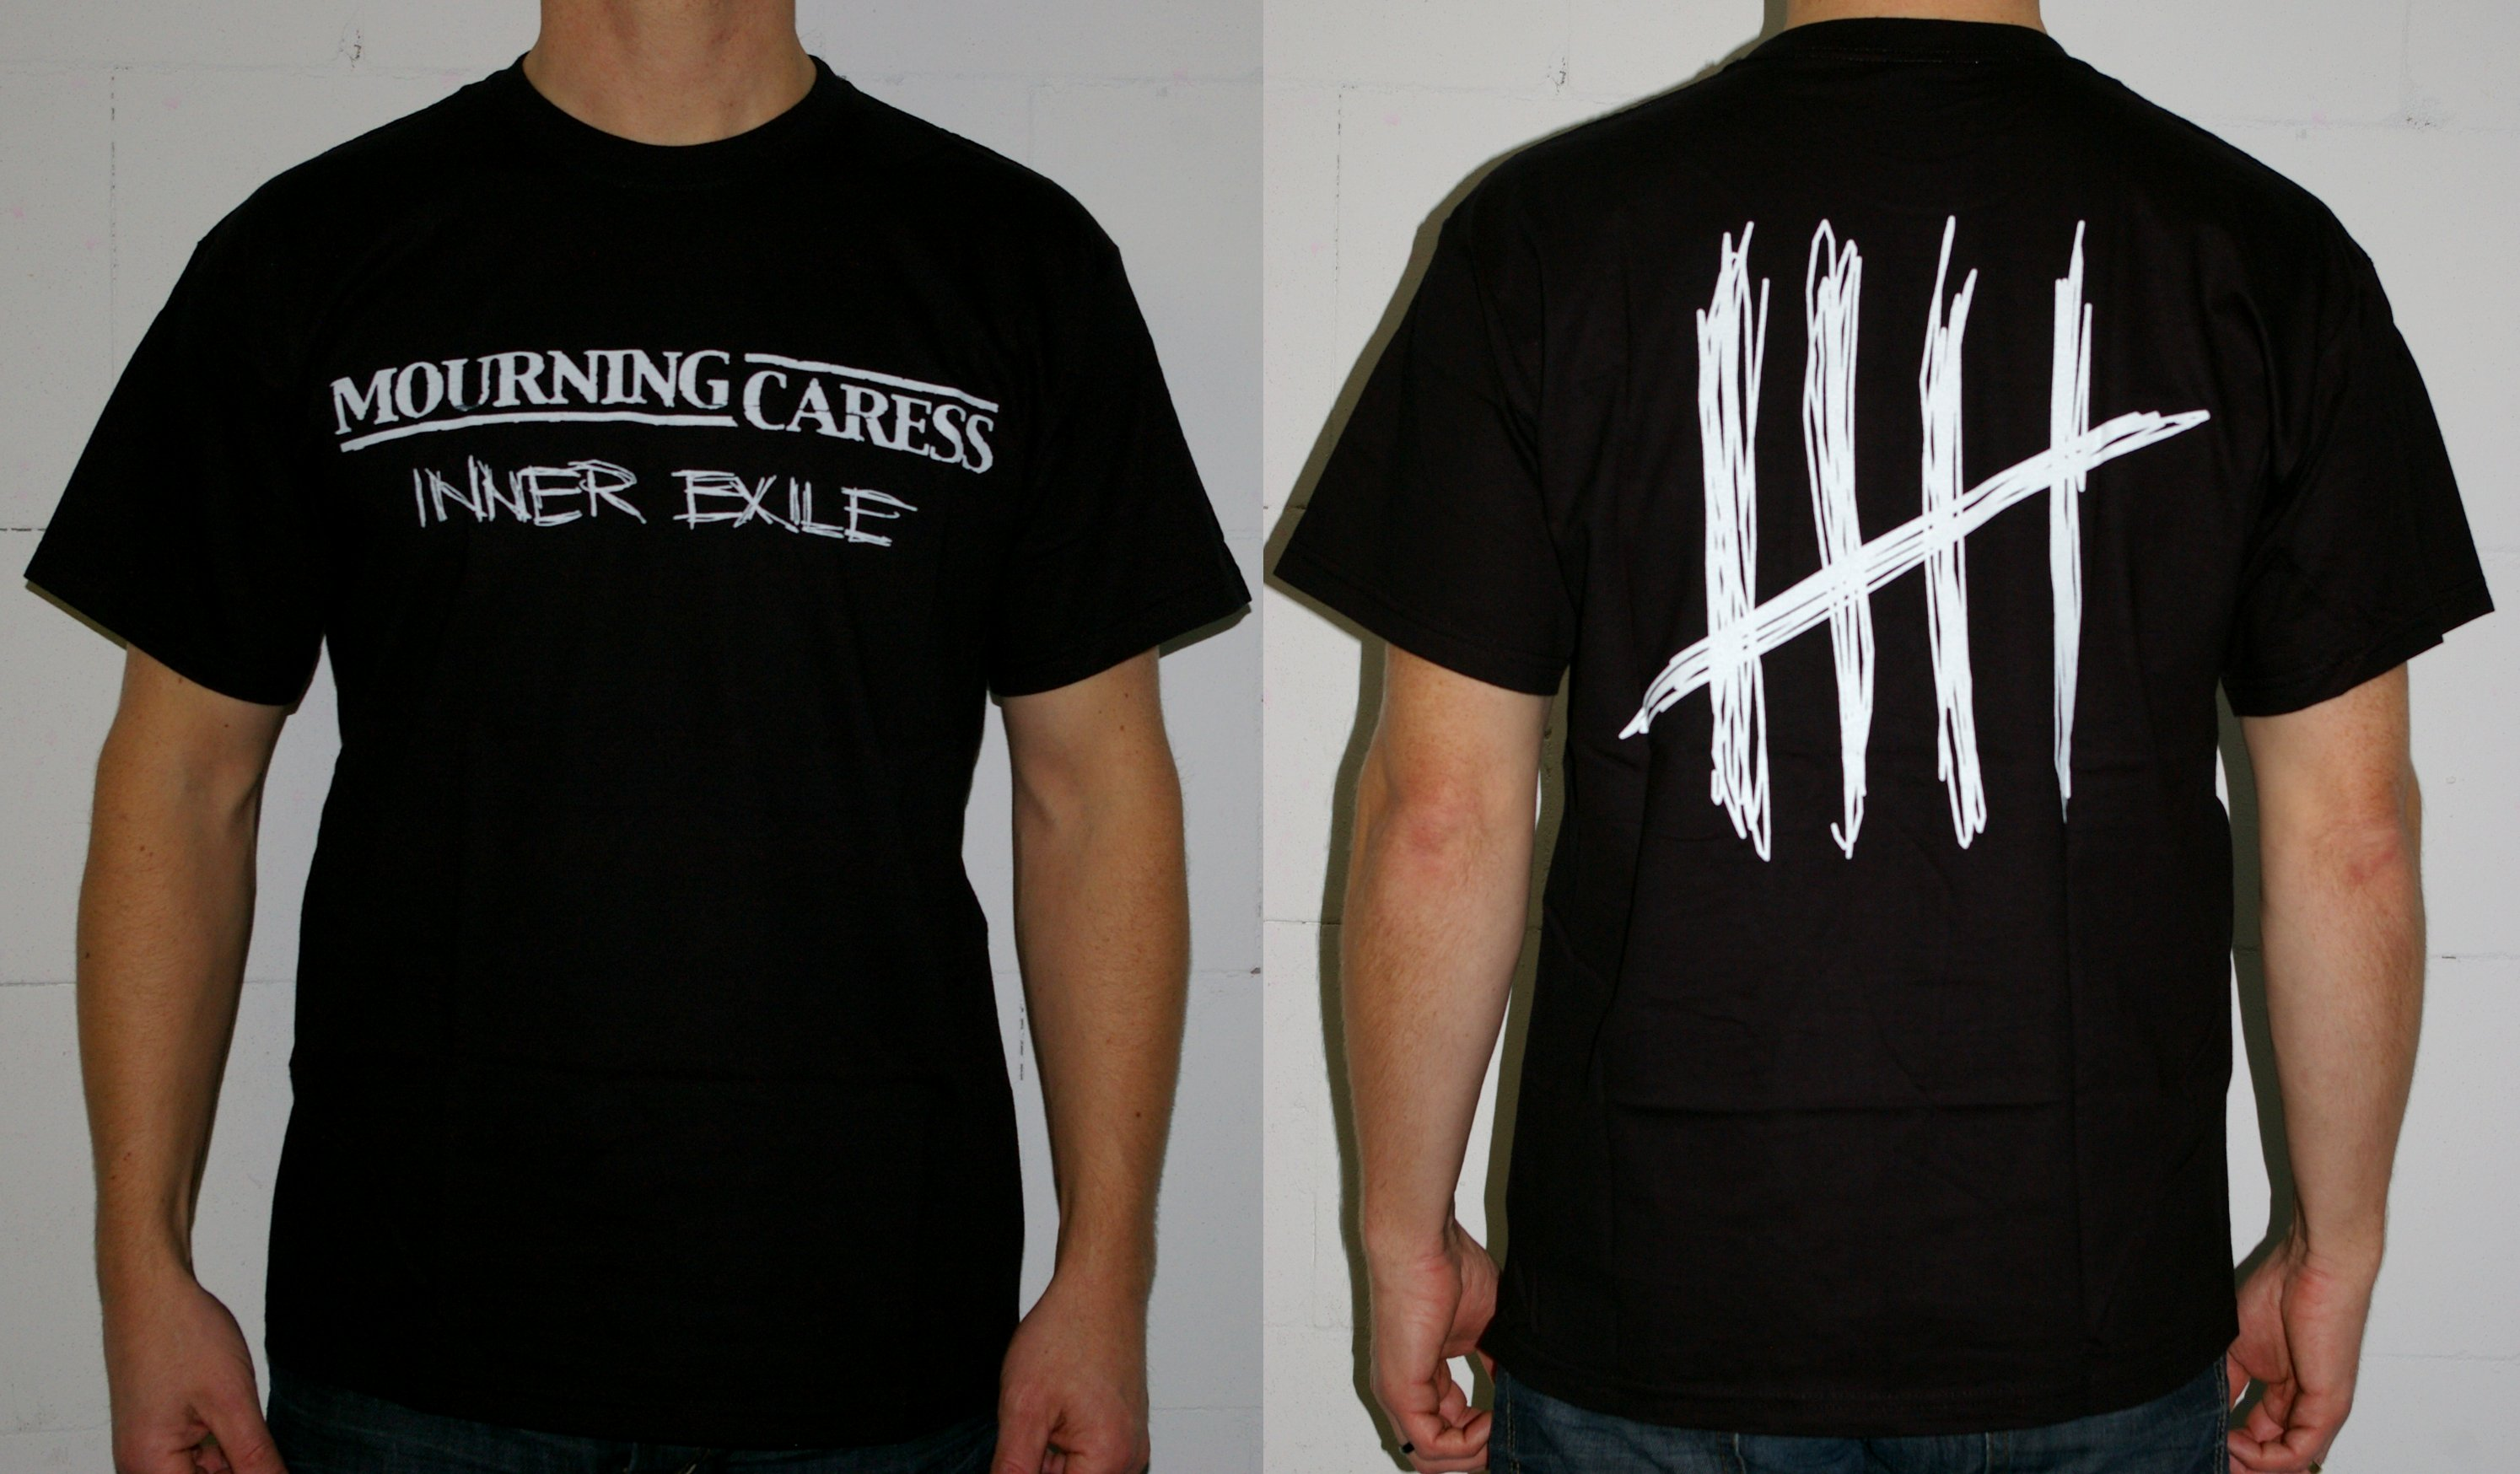 Mourning Caress T-Shirt Inner Exile